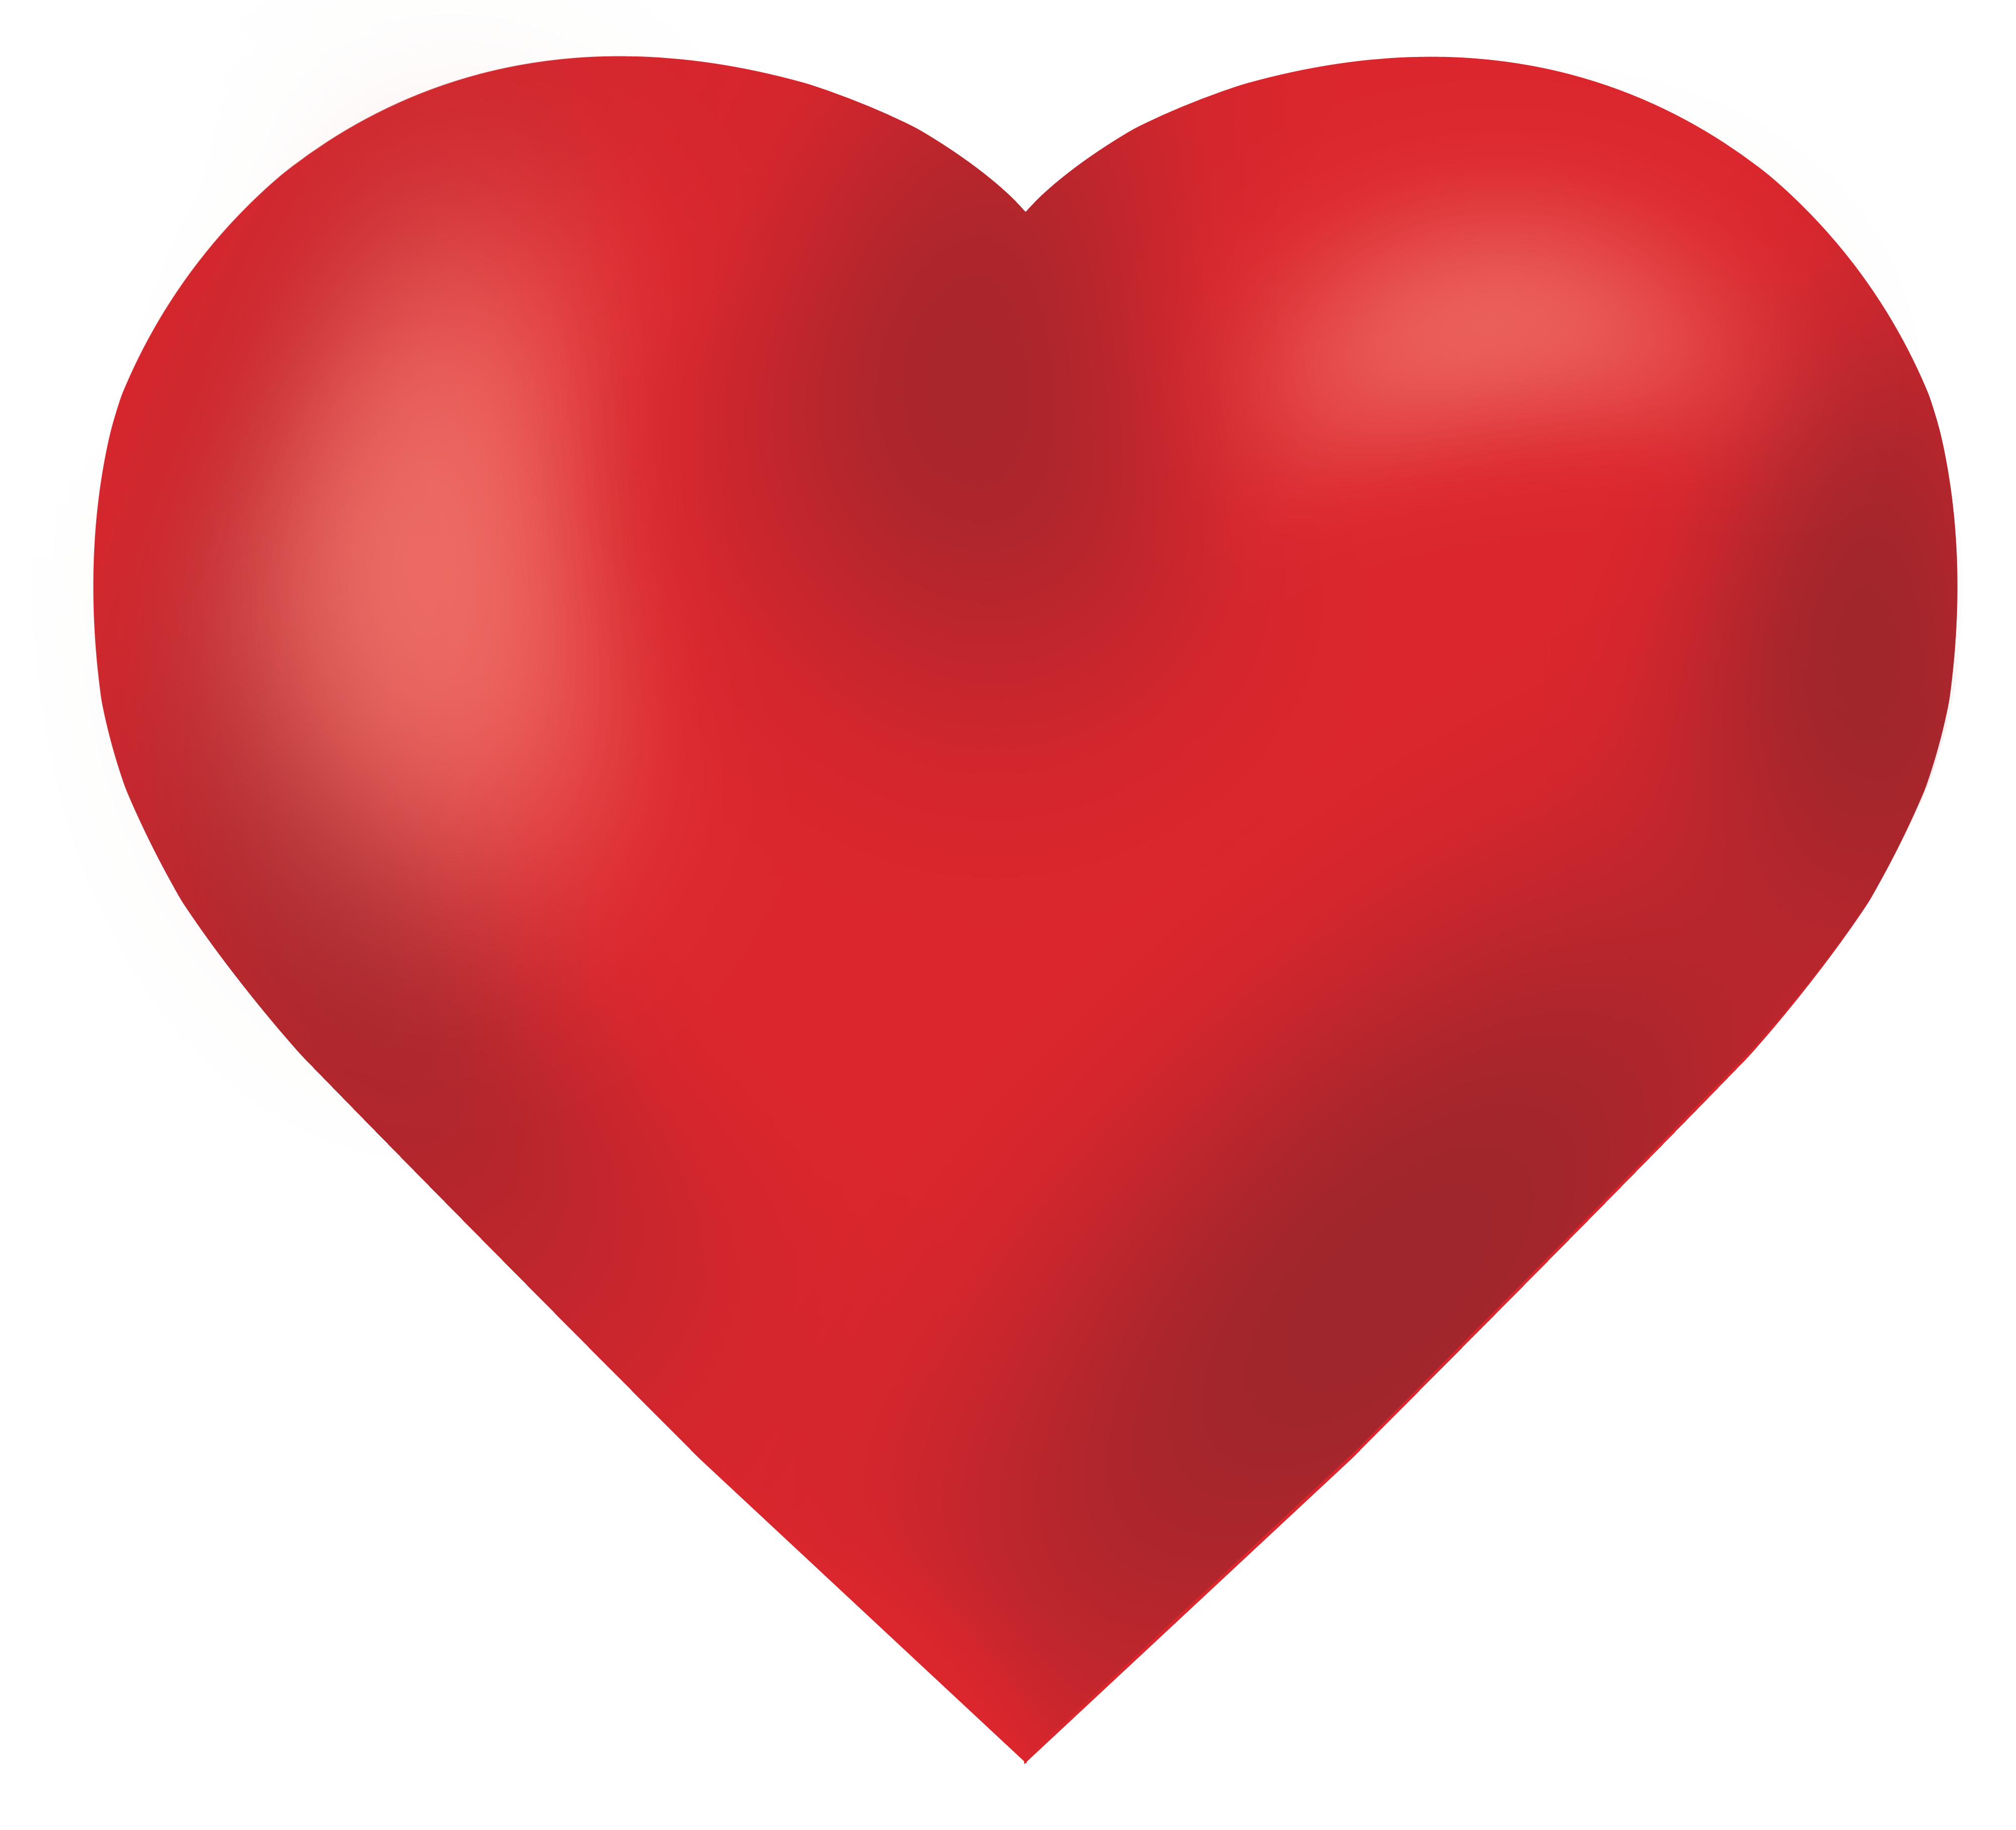 Png love. Heart transparent pictures free